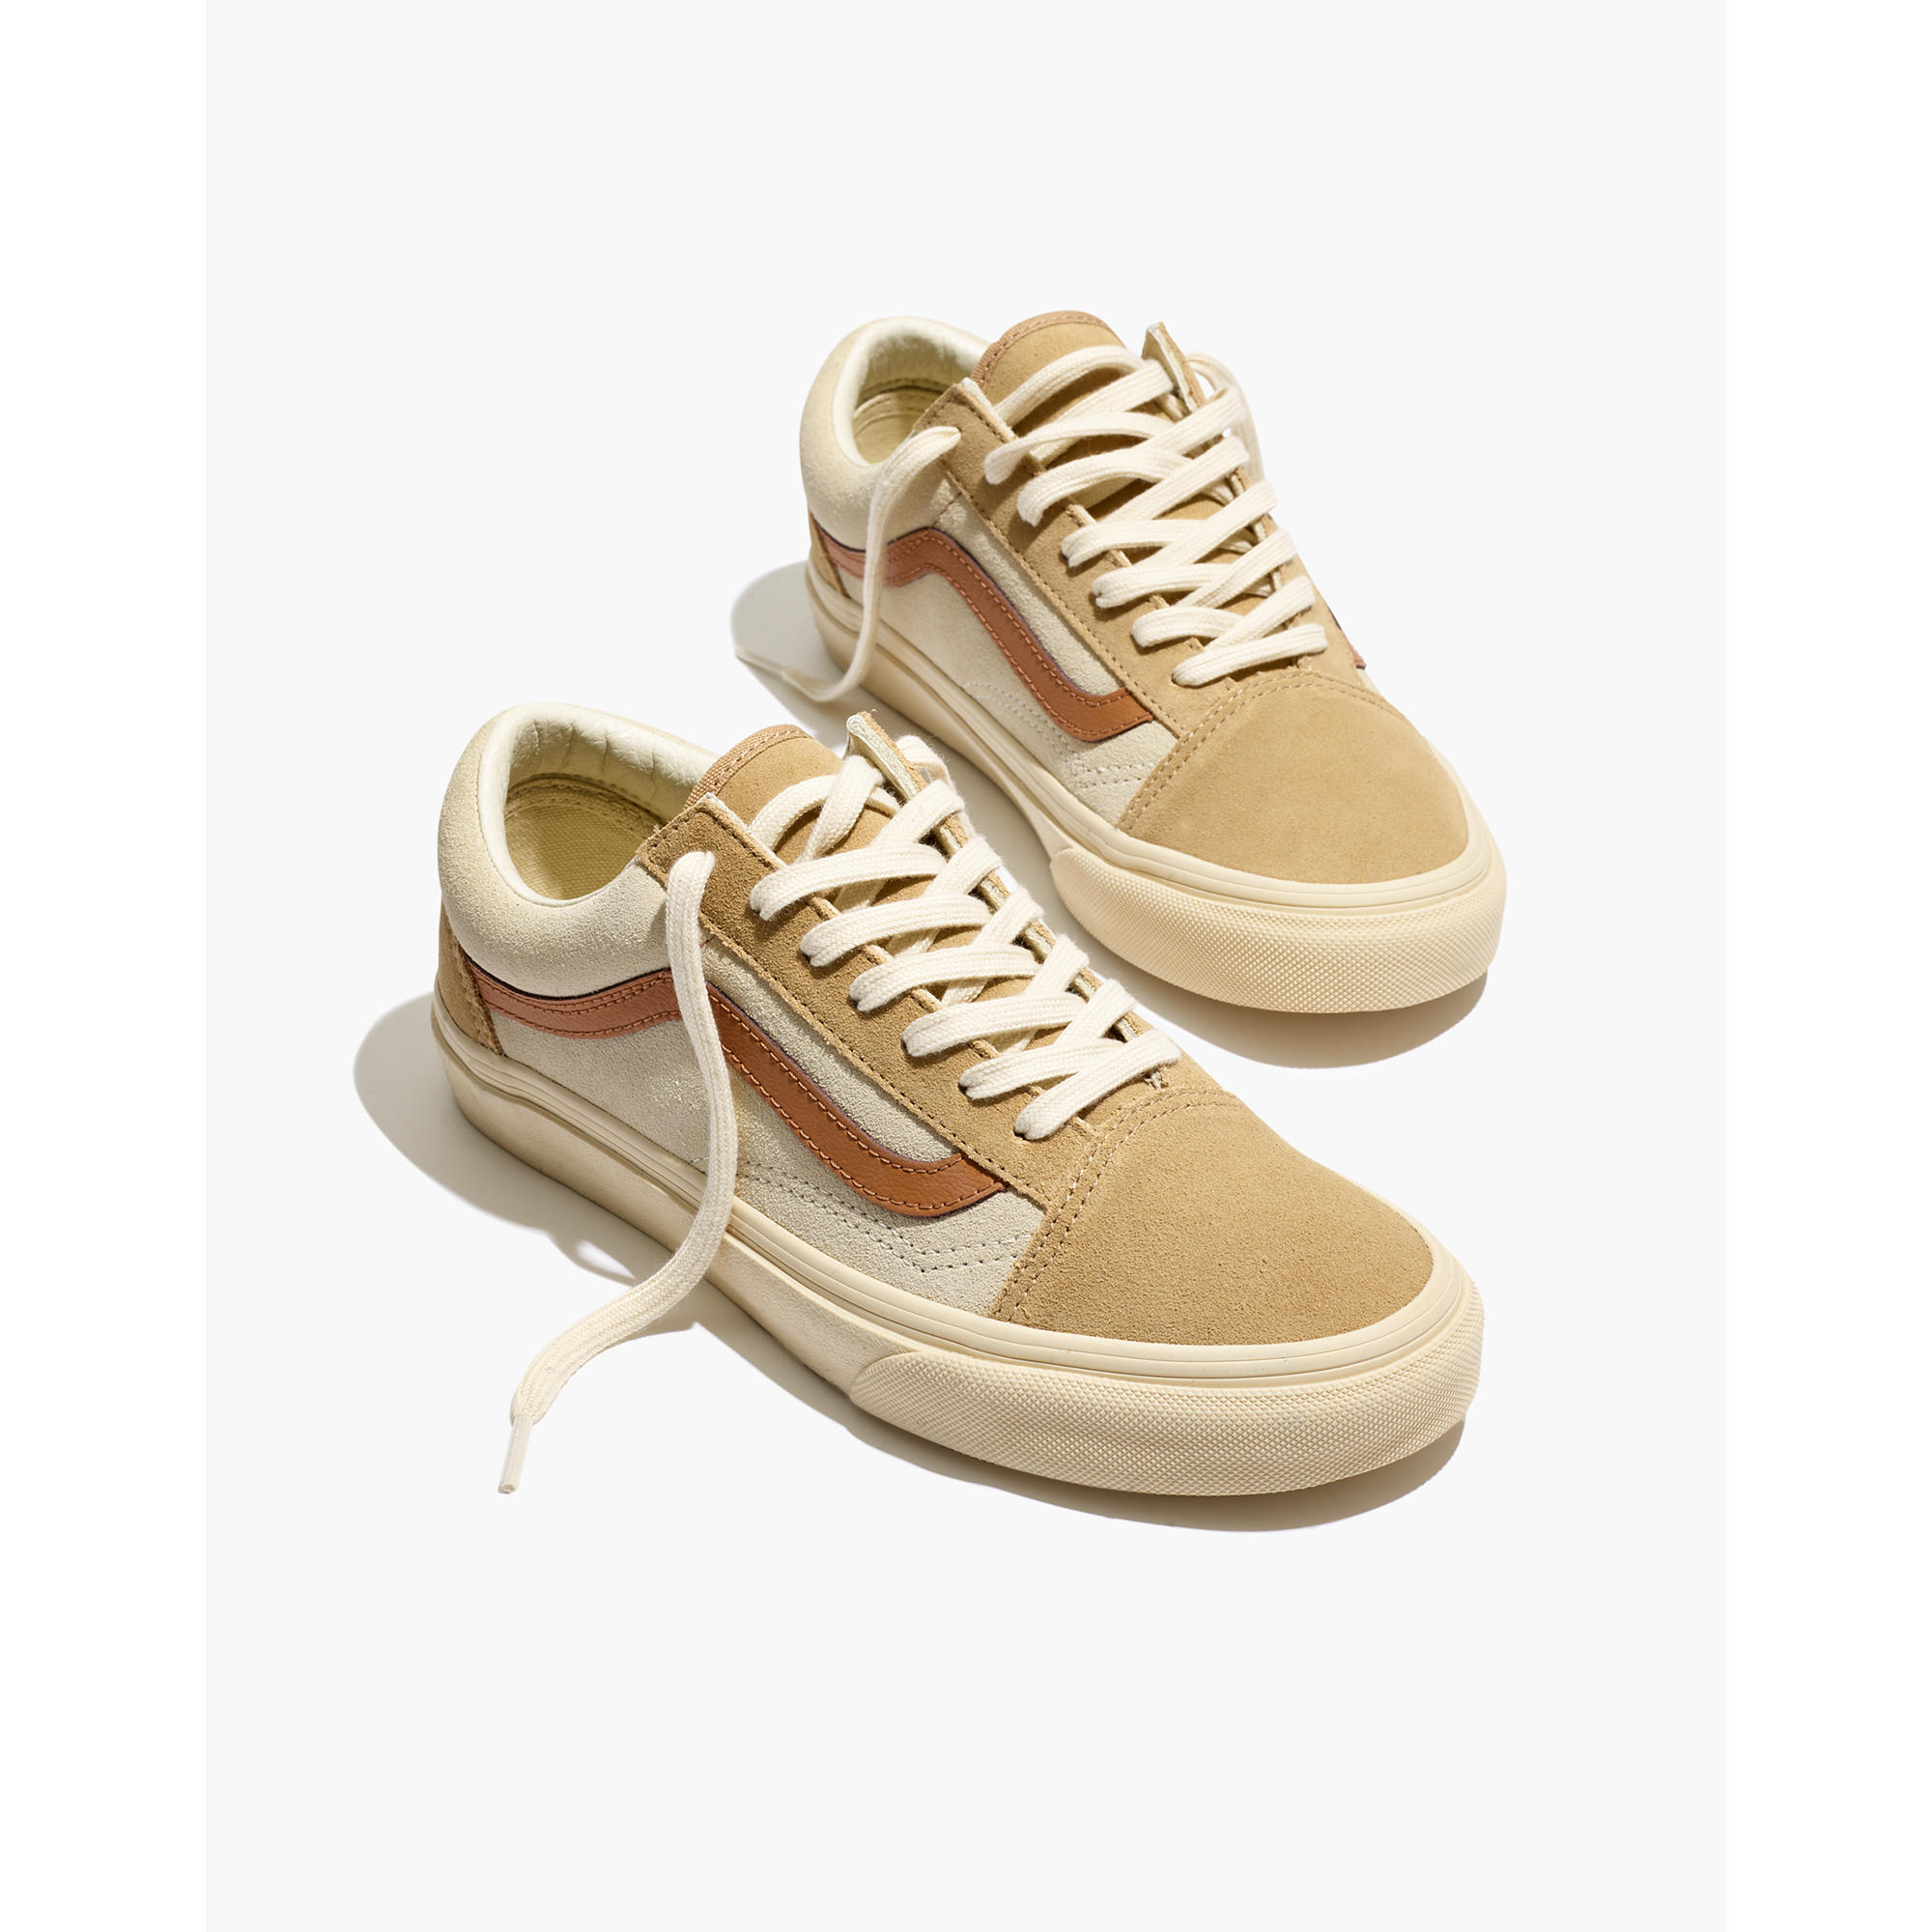 Image result for vans madewell